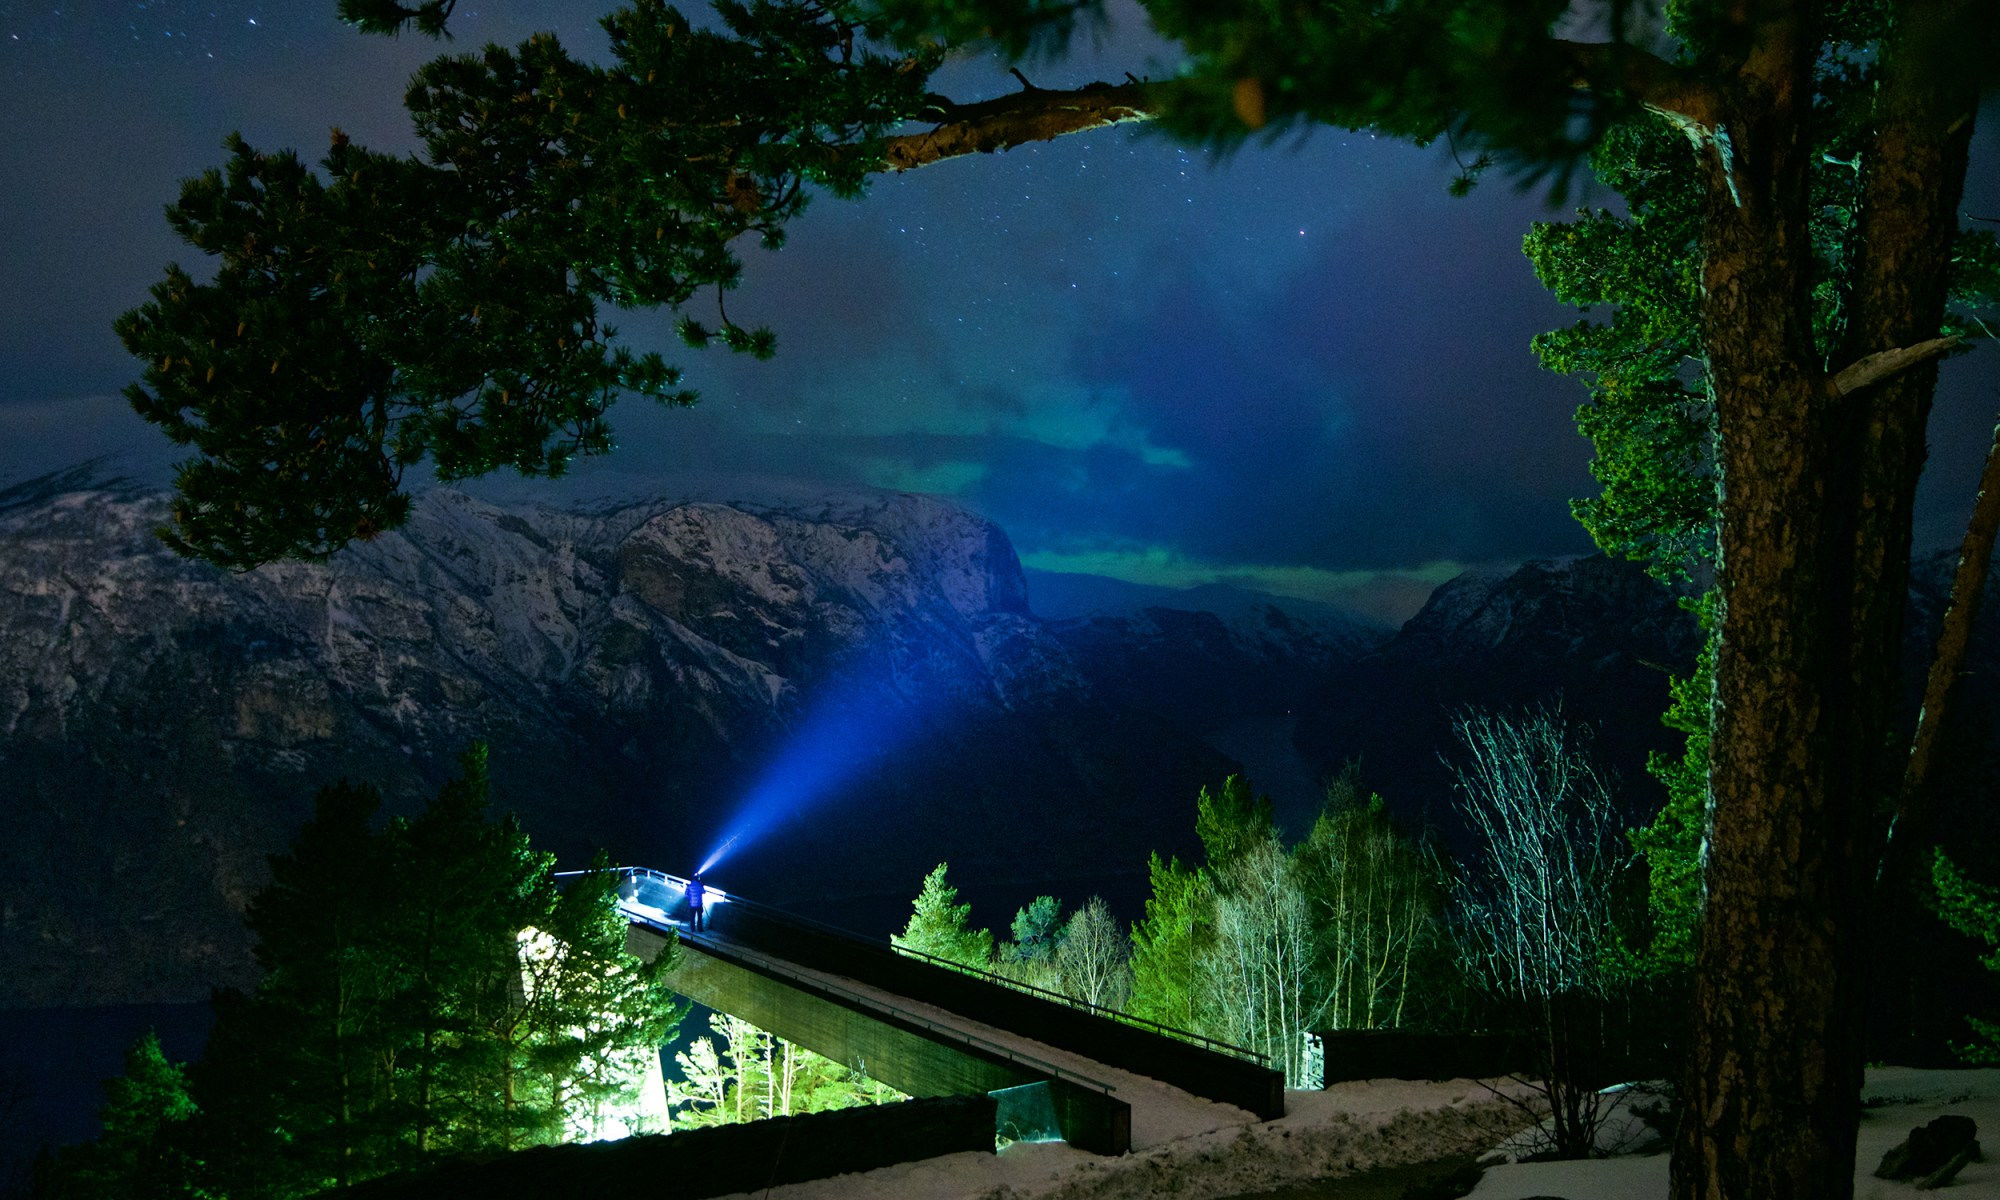 FJORDS Wallpaper - Northern Lights above the Aurlandsfjord in Norway